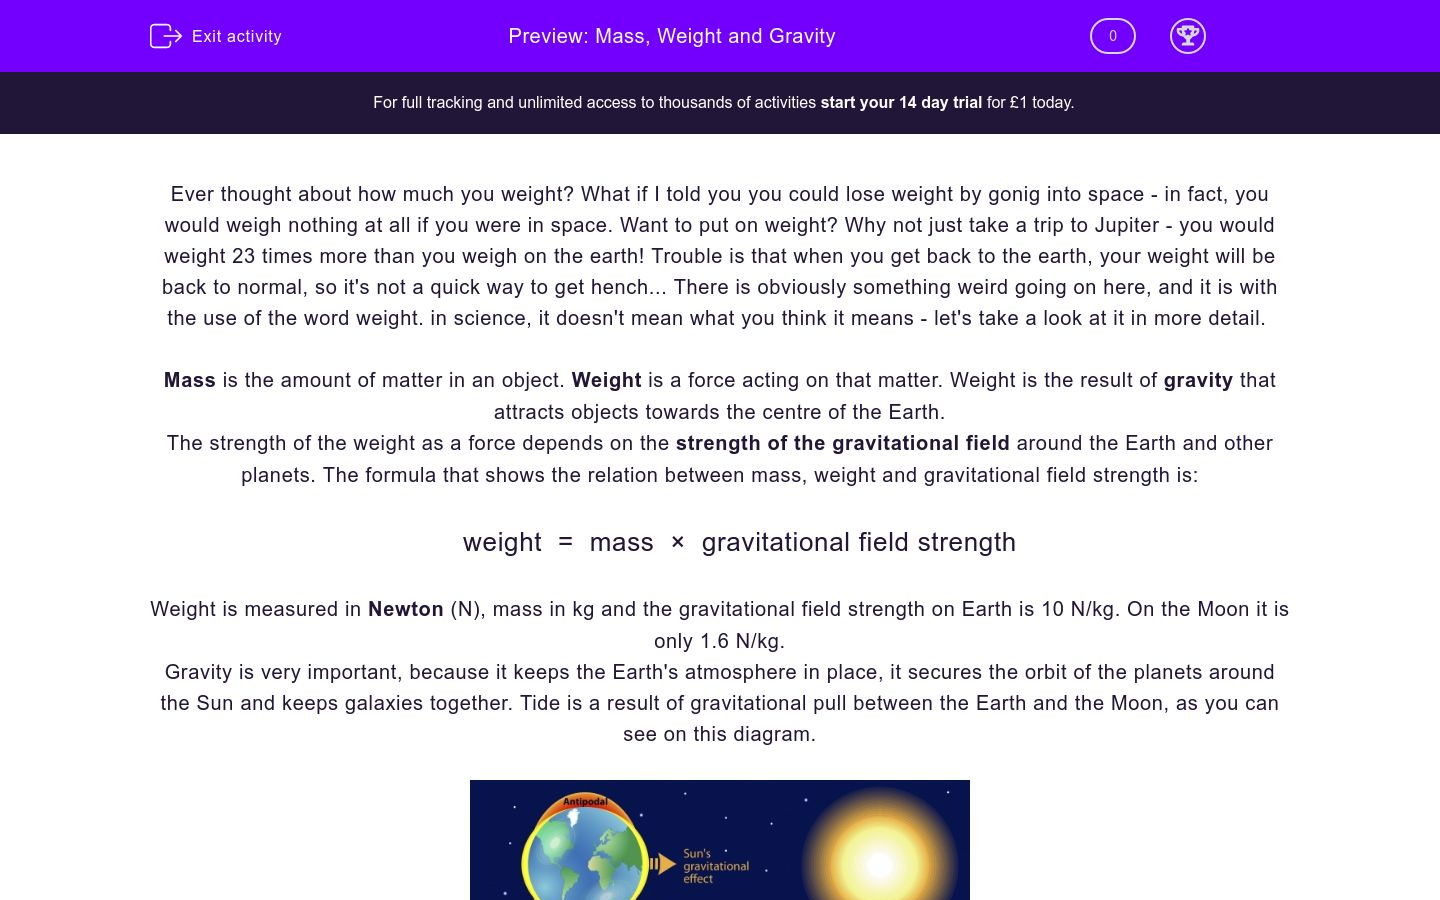 'Mass, Weight and Gravity' worksheet